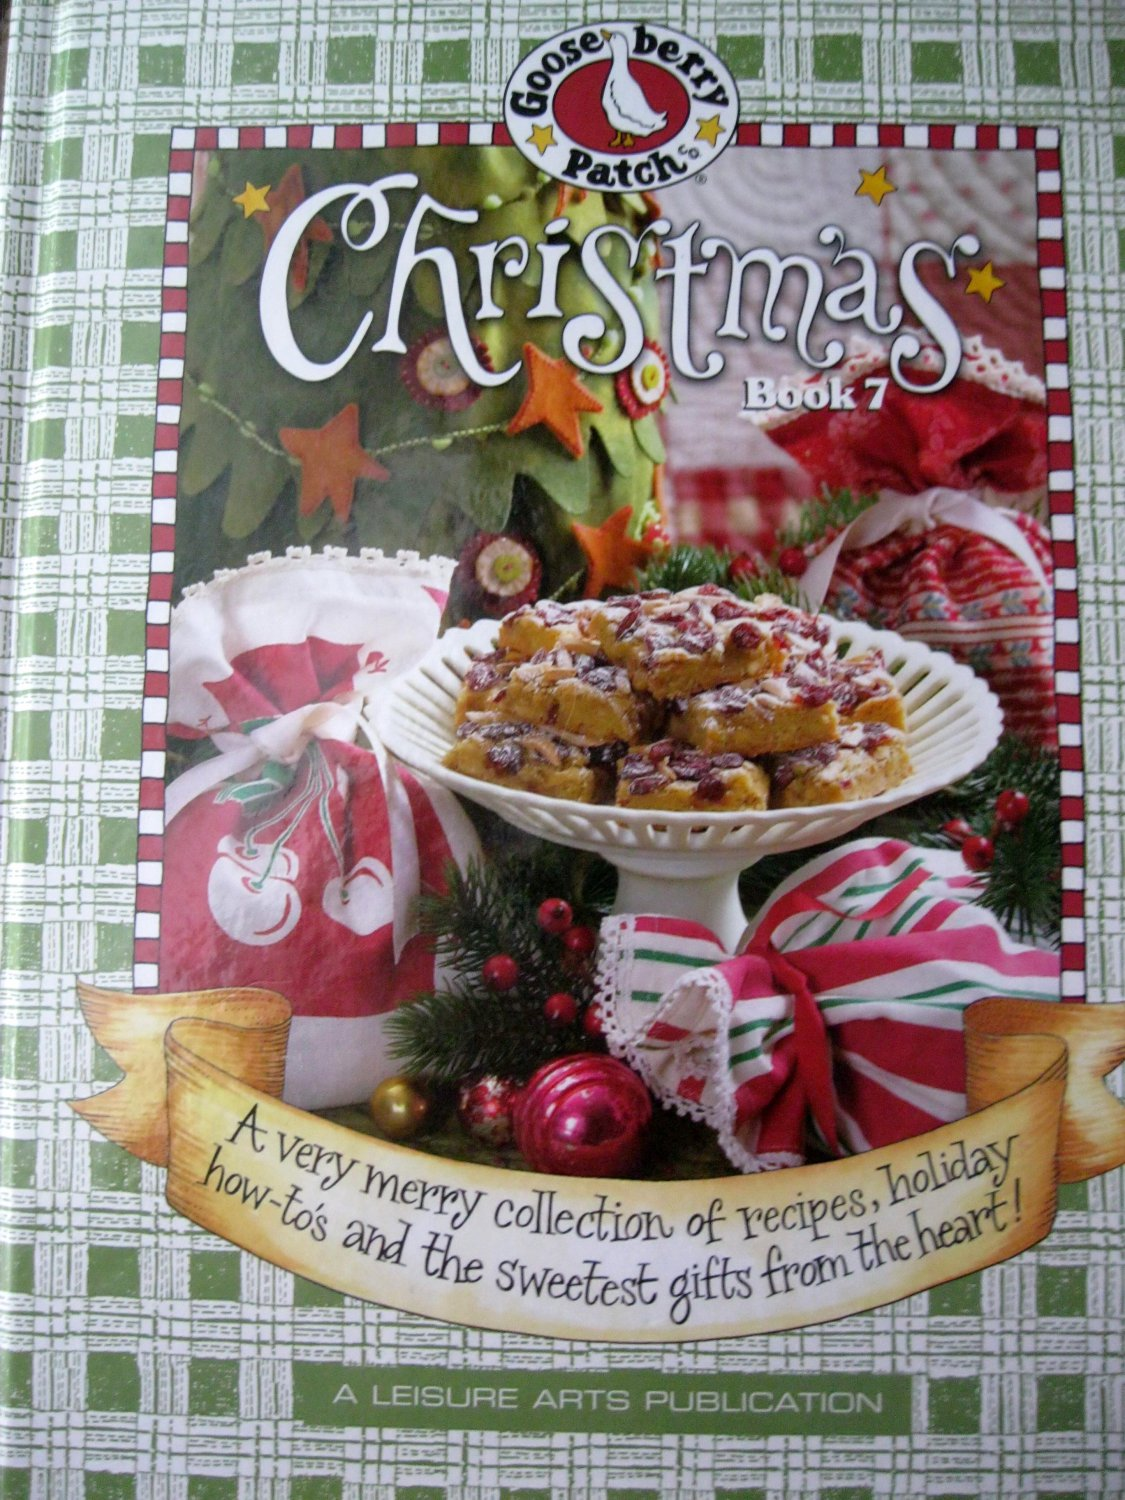 Gooseberry Patch Christmas Hardcover 2005